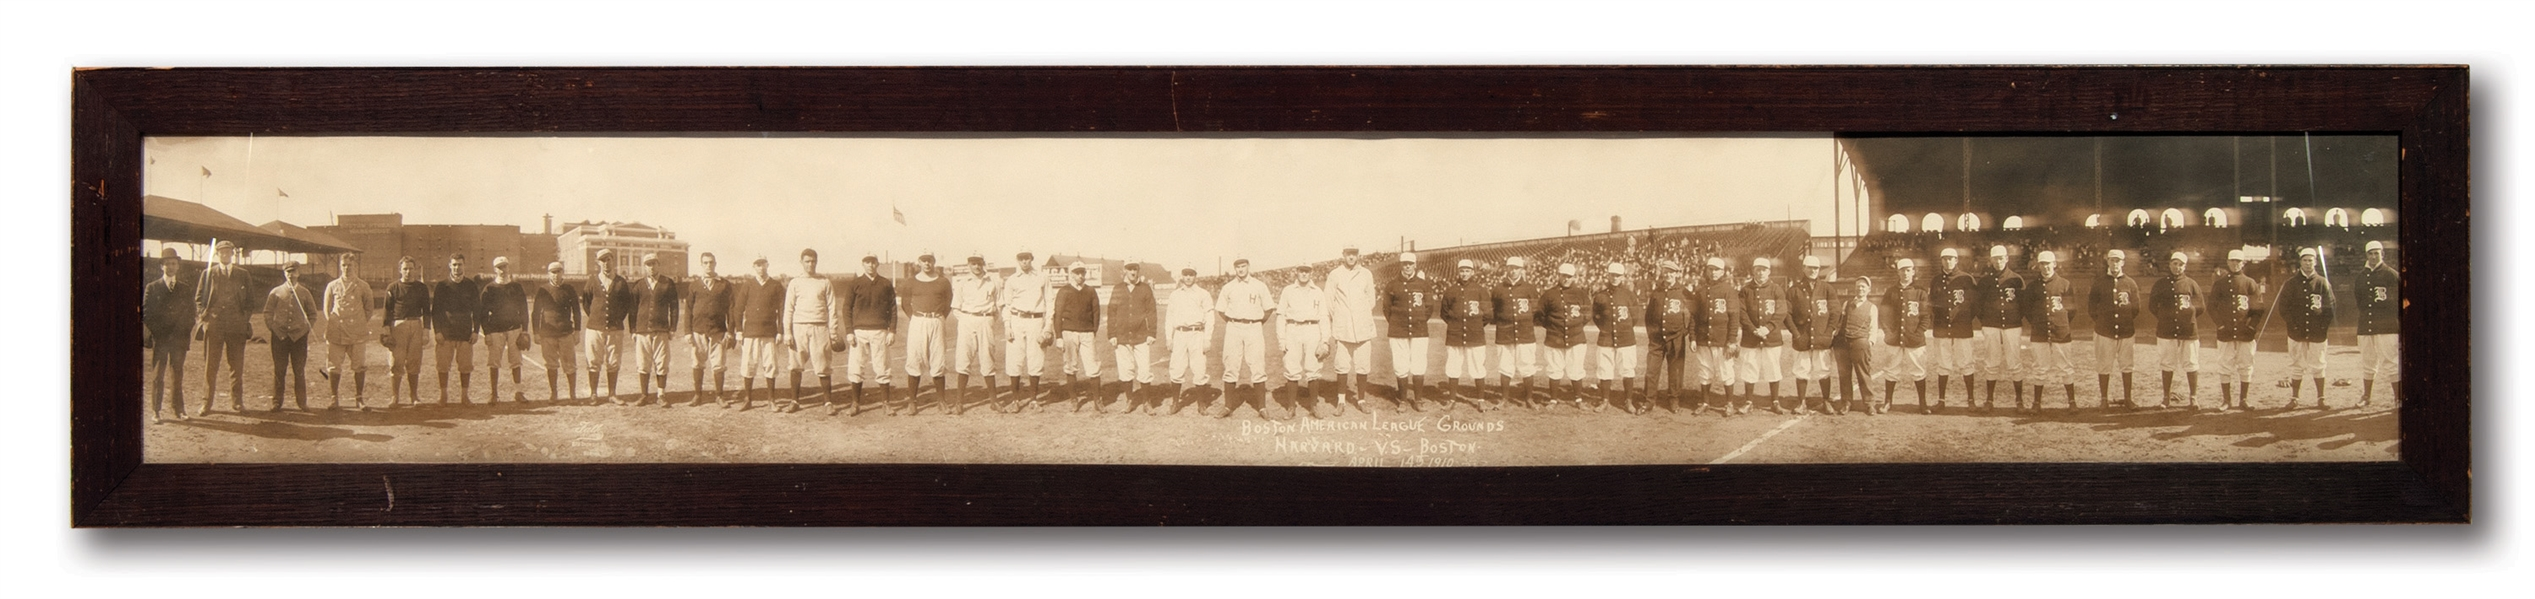 APRIL 14, 1910 BOSTON RED SOX VS. HARVARD PANORAMIC PHOTOGRAPH AT BOSTON AMERICAN LEAGUE GROUNDS